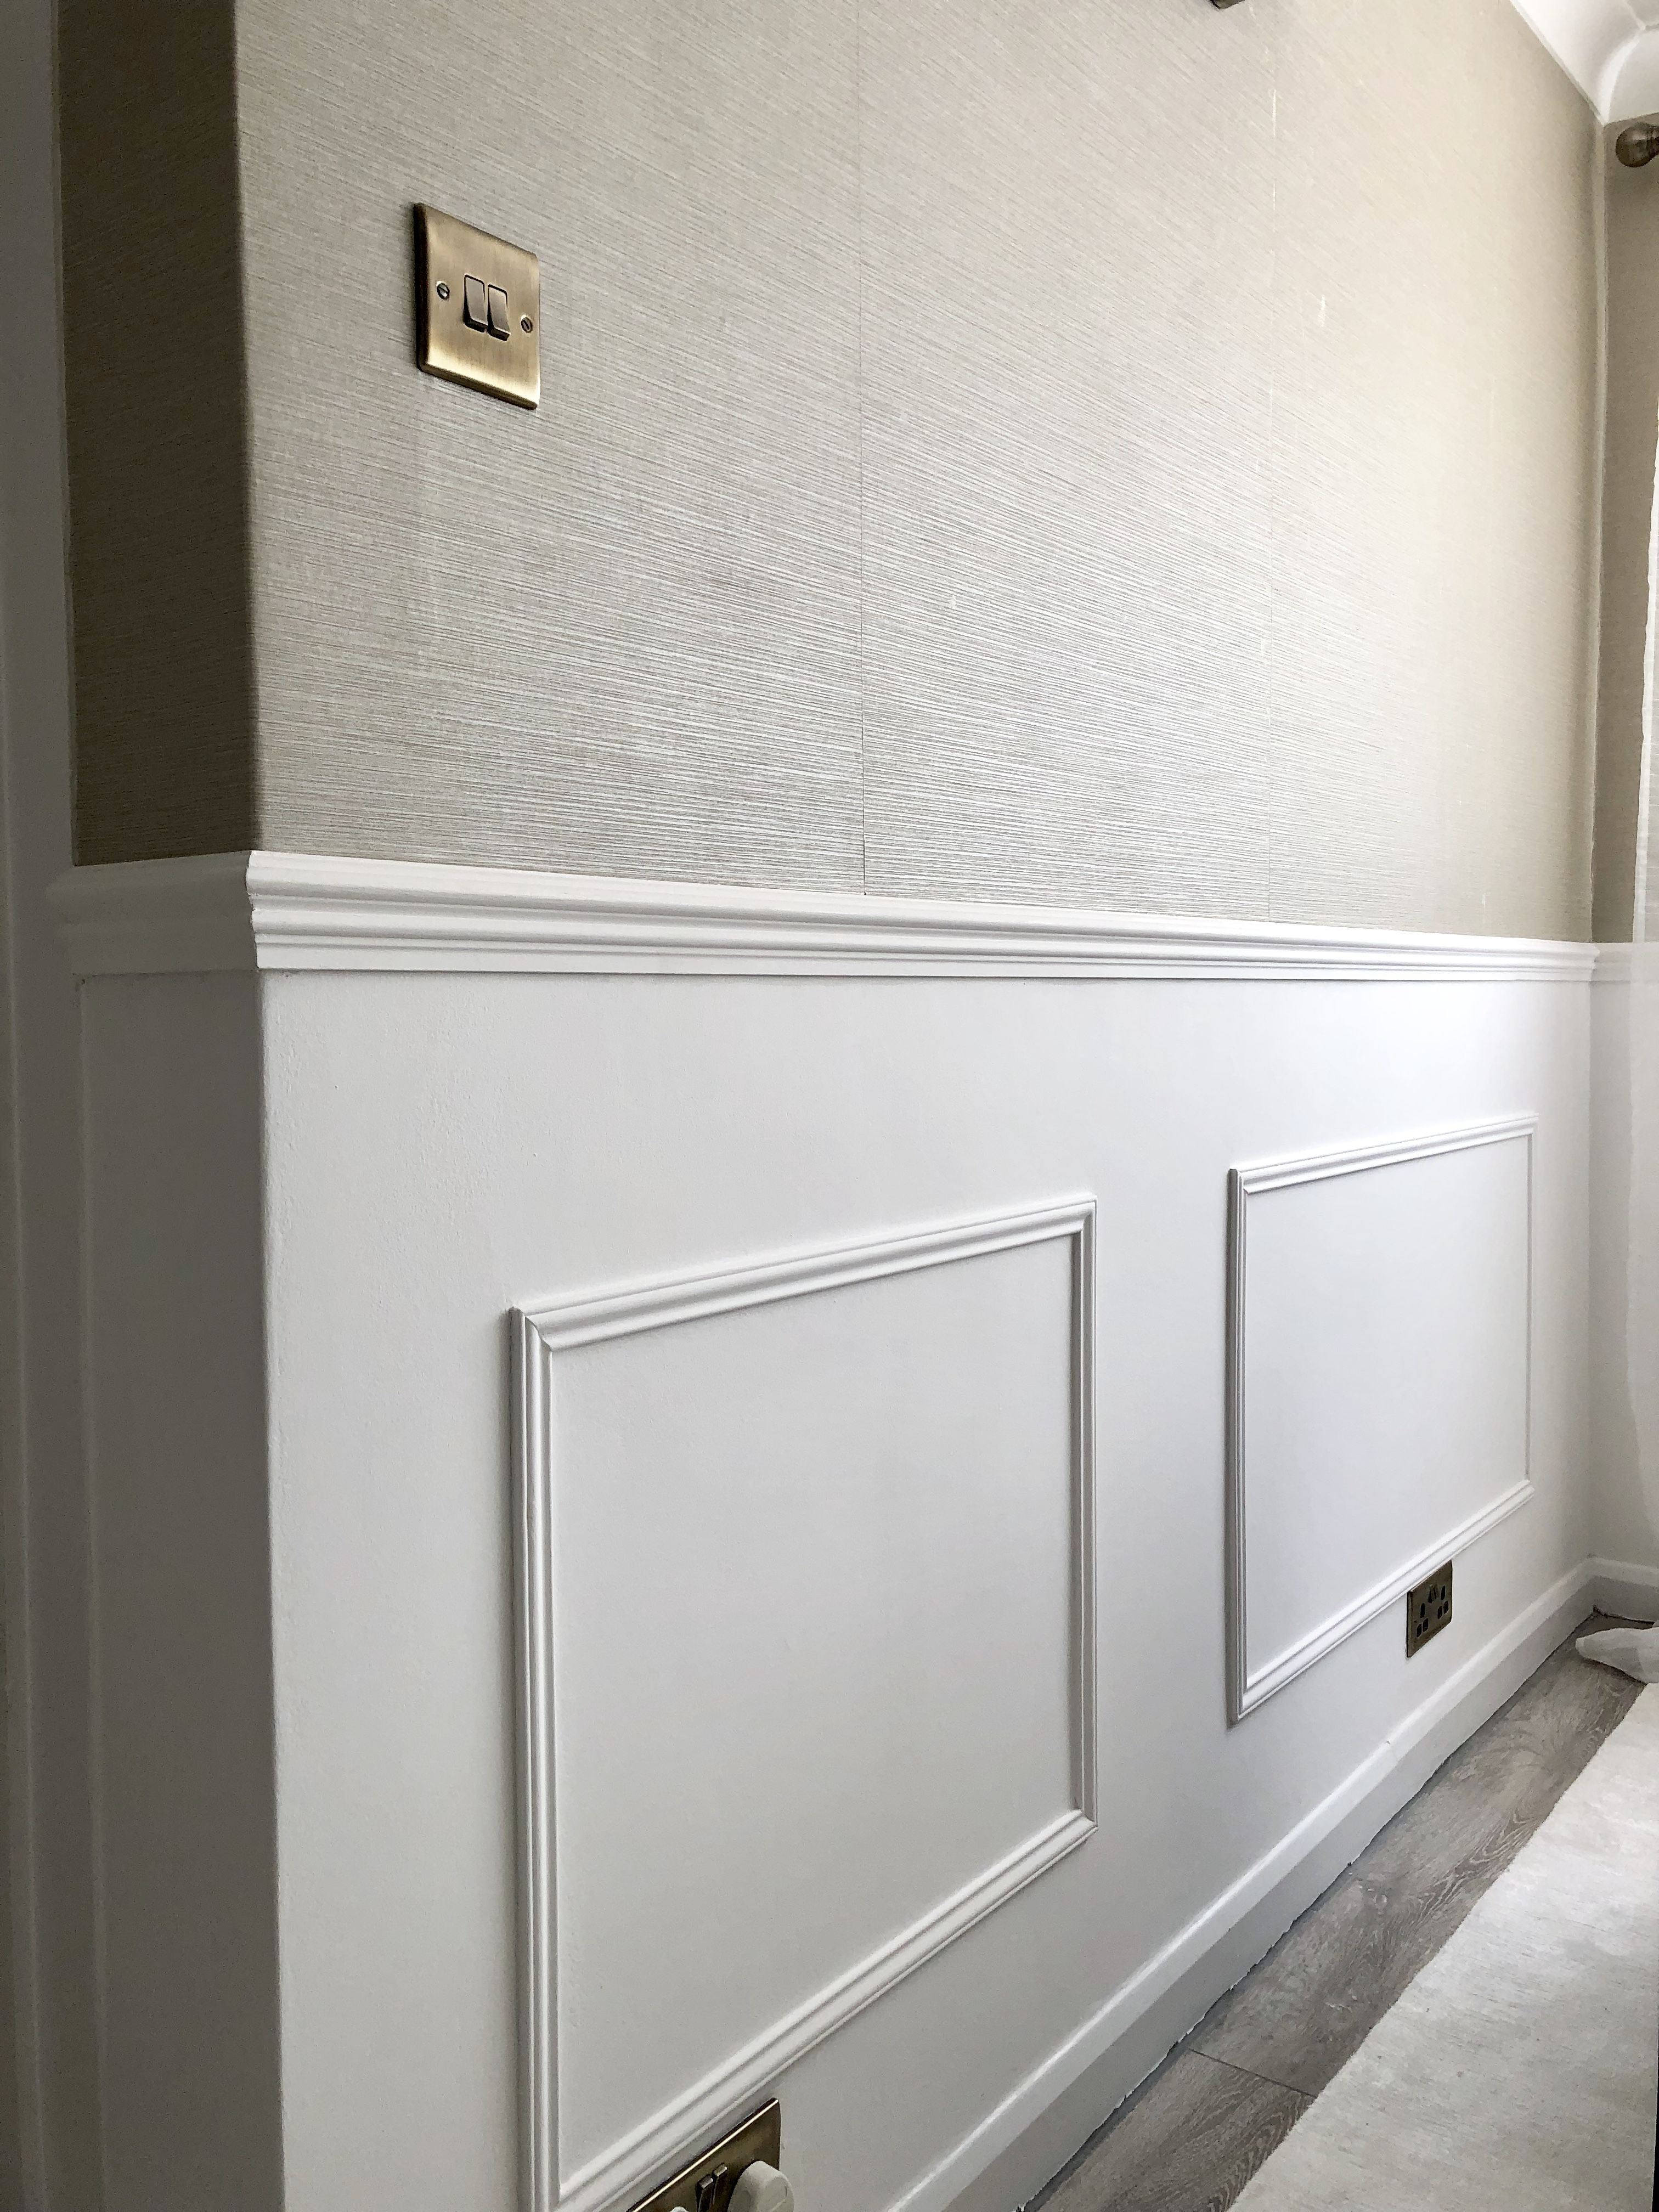 Diy Wall Panelling Tutorial A Simple Step By Step Guide Showing You How To Add Diy Wall Panelling To Your H Interior Design Blogs Flur Design Wandverkleidung